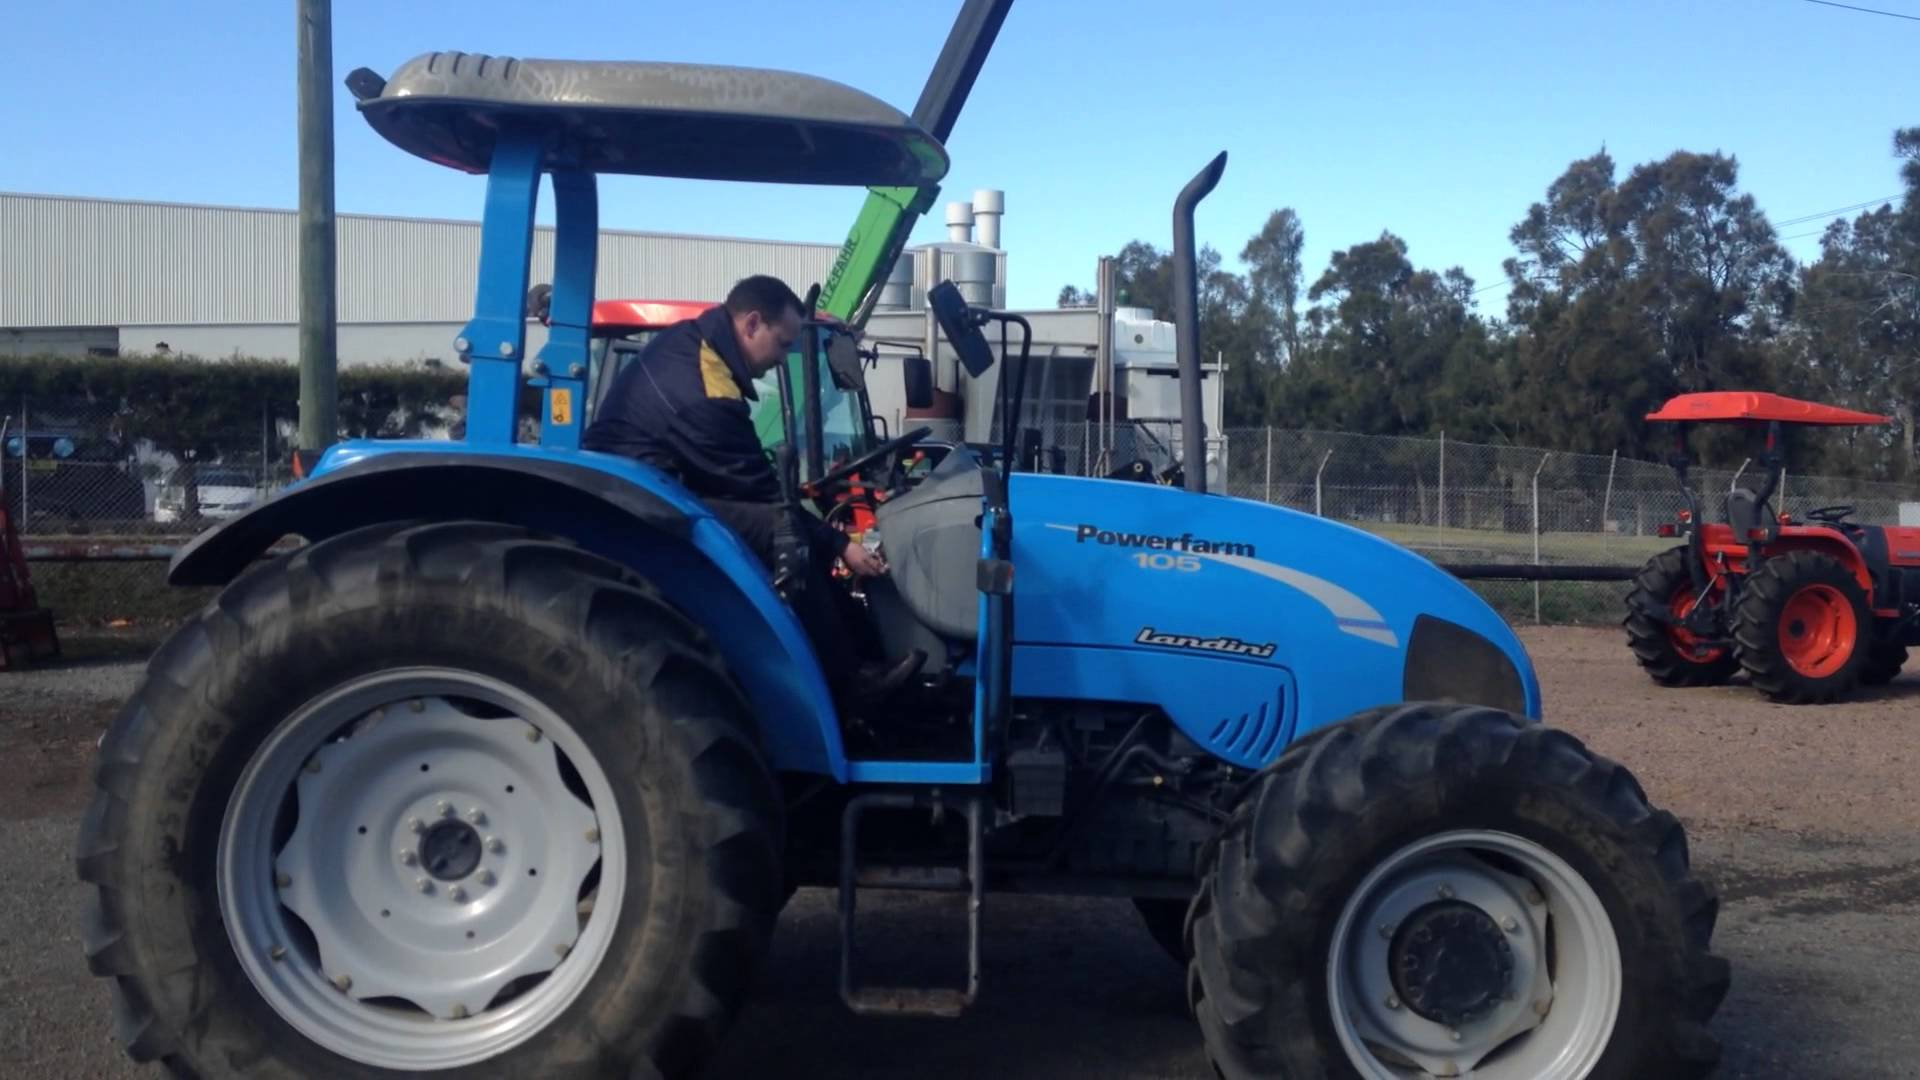 Landini powerfarm photo - 10